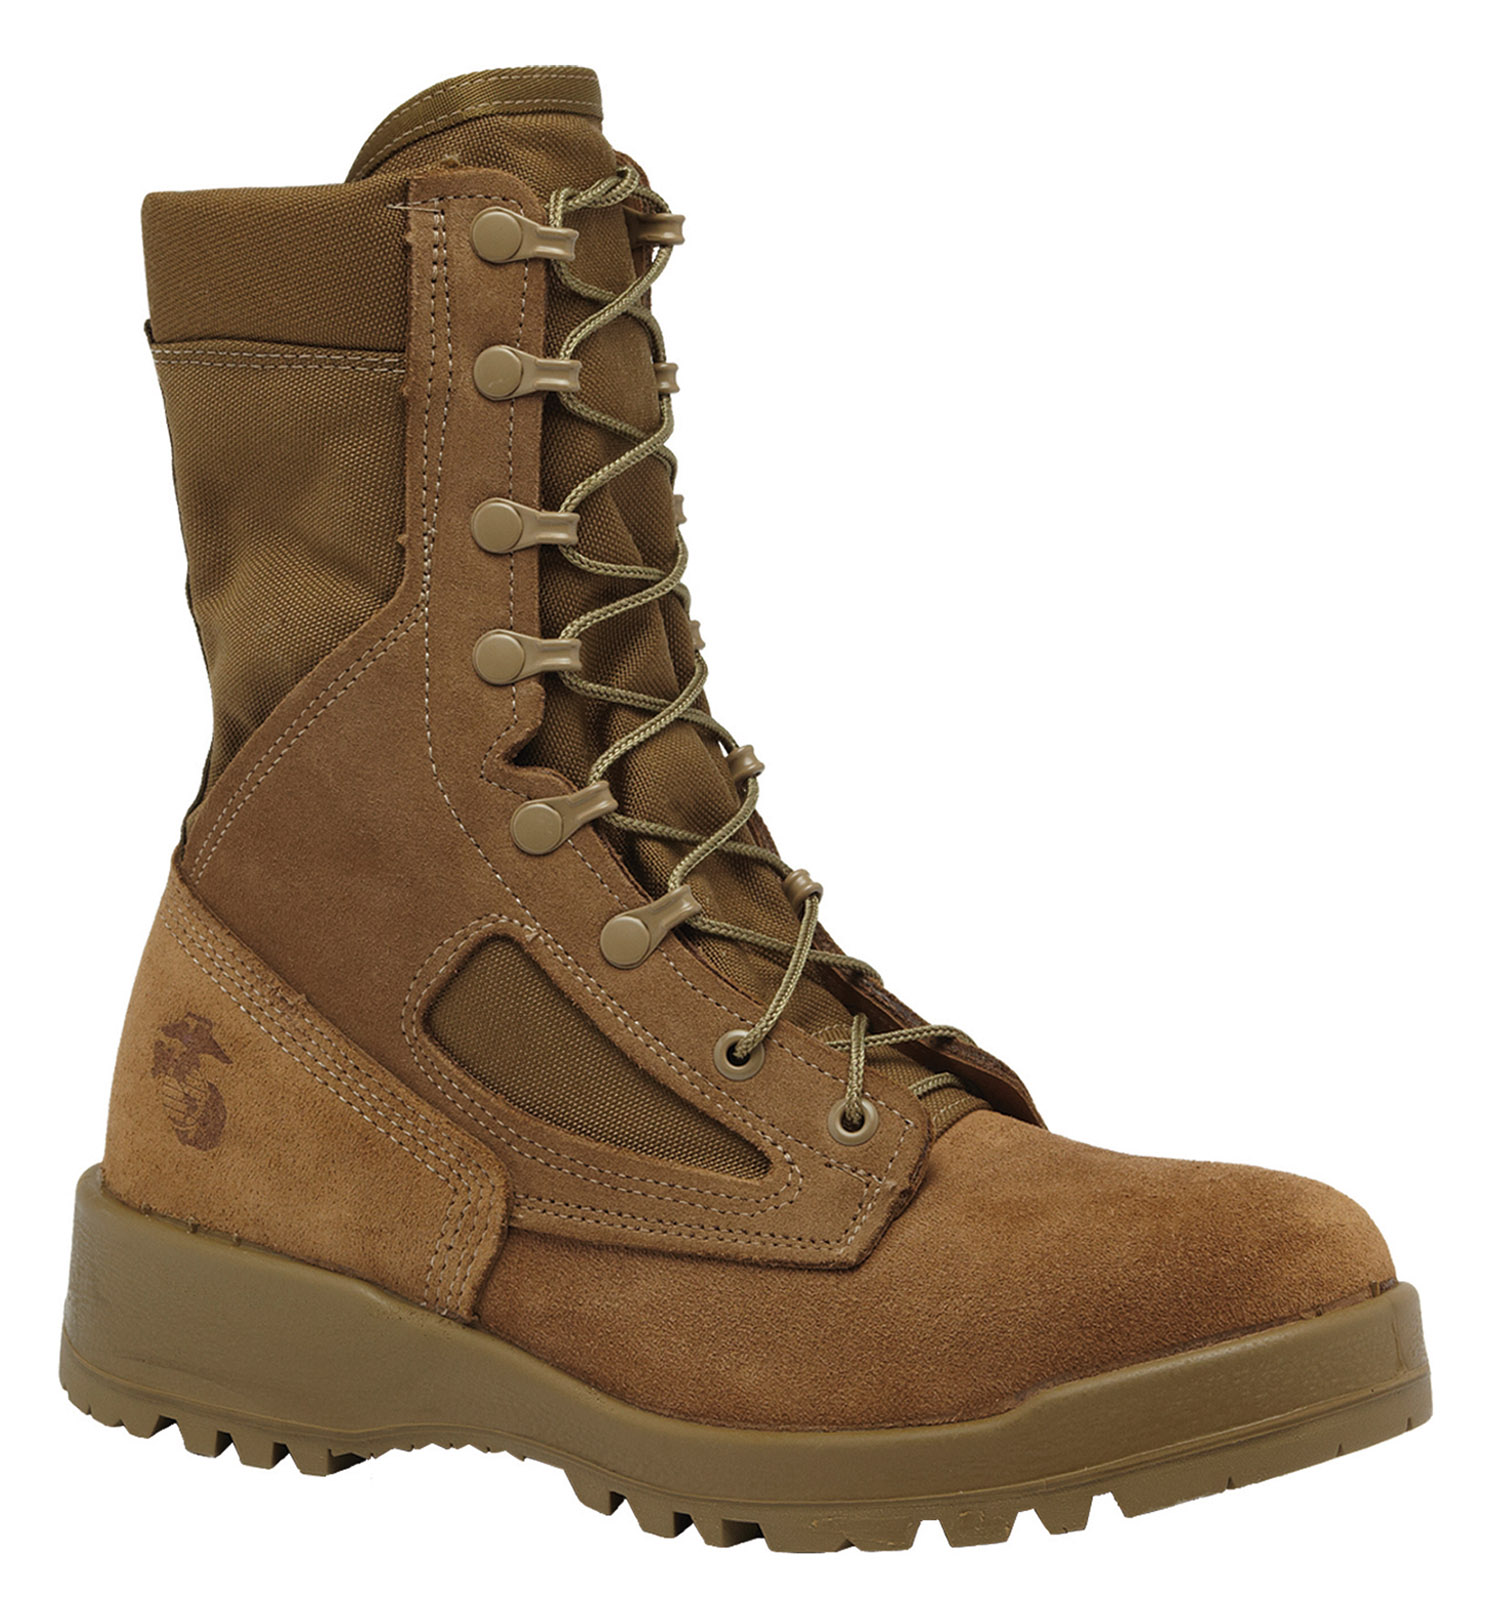 "Belleville 8"" USMC Hot Weather Combat Boot"